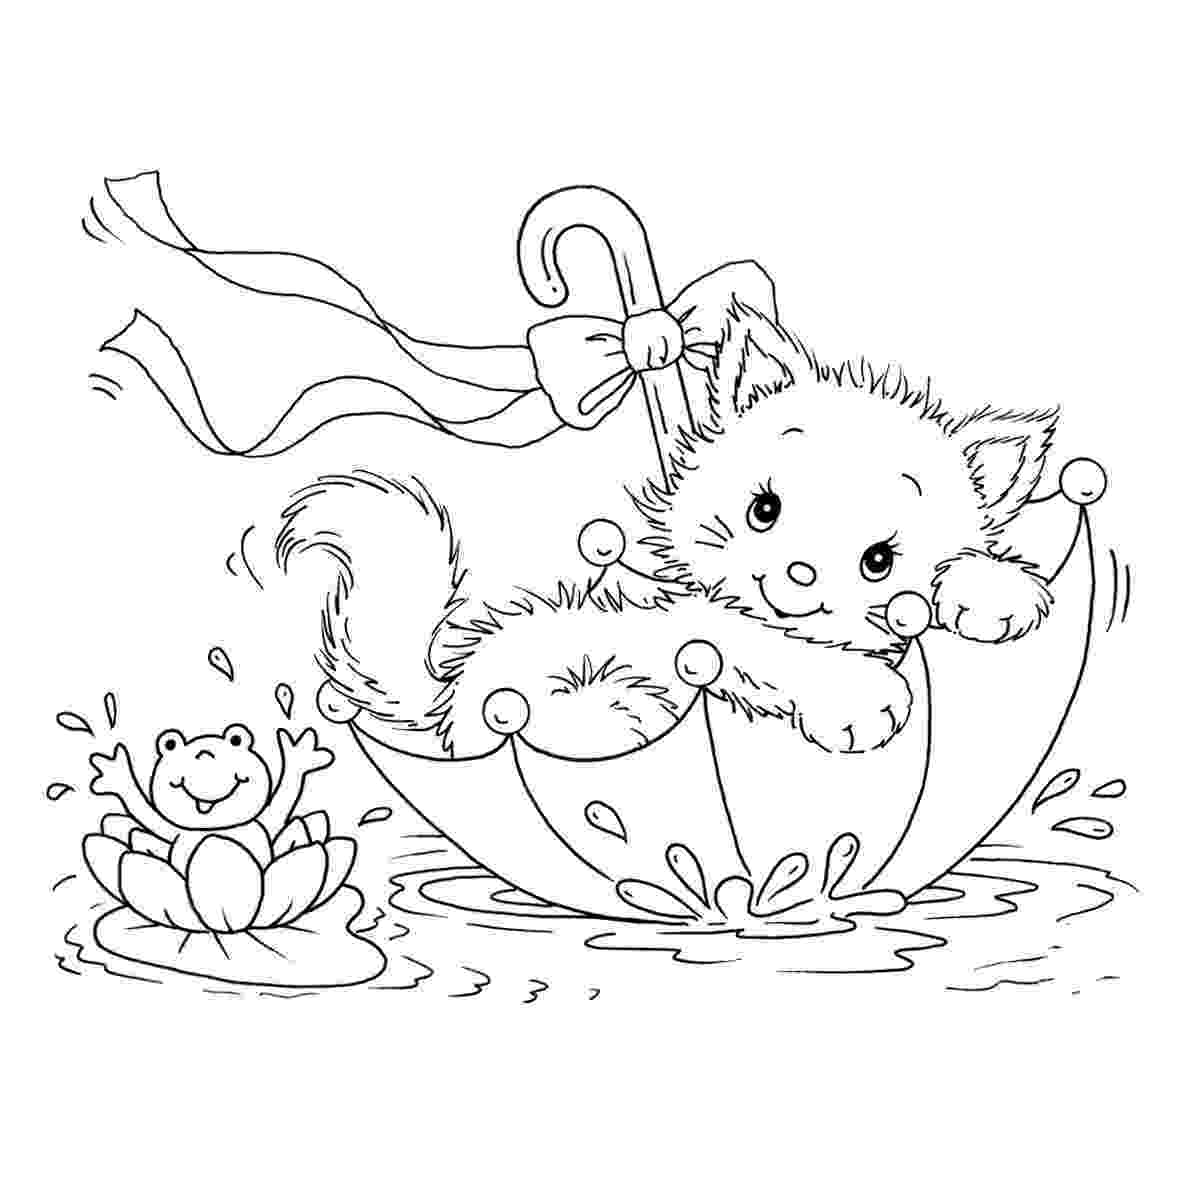 kitty cat coloring pages free printable kitten coloring pages for kids best kitty cat coloring pages